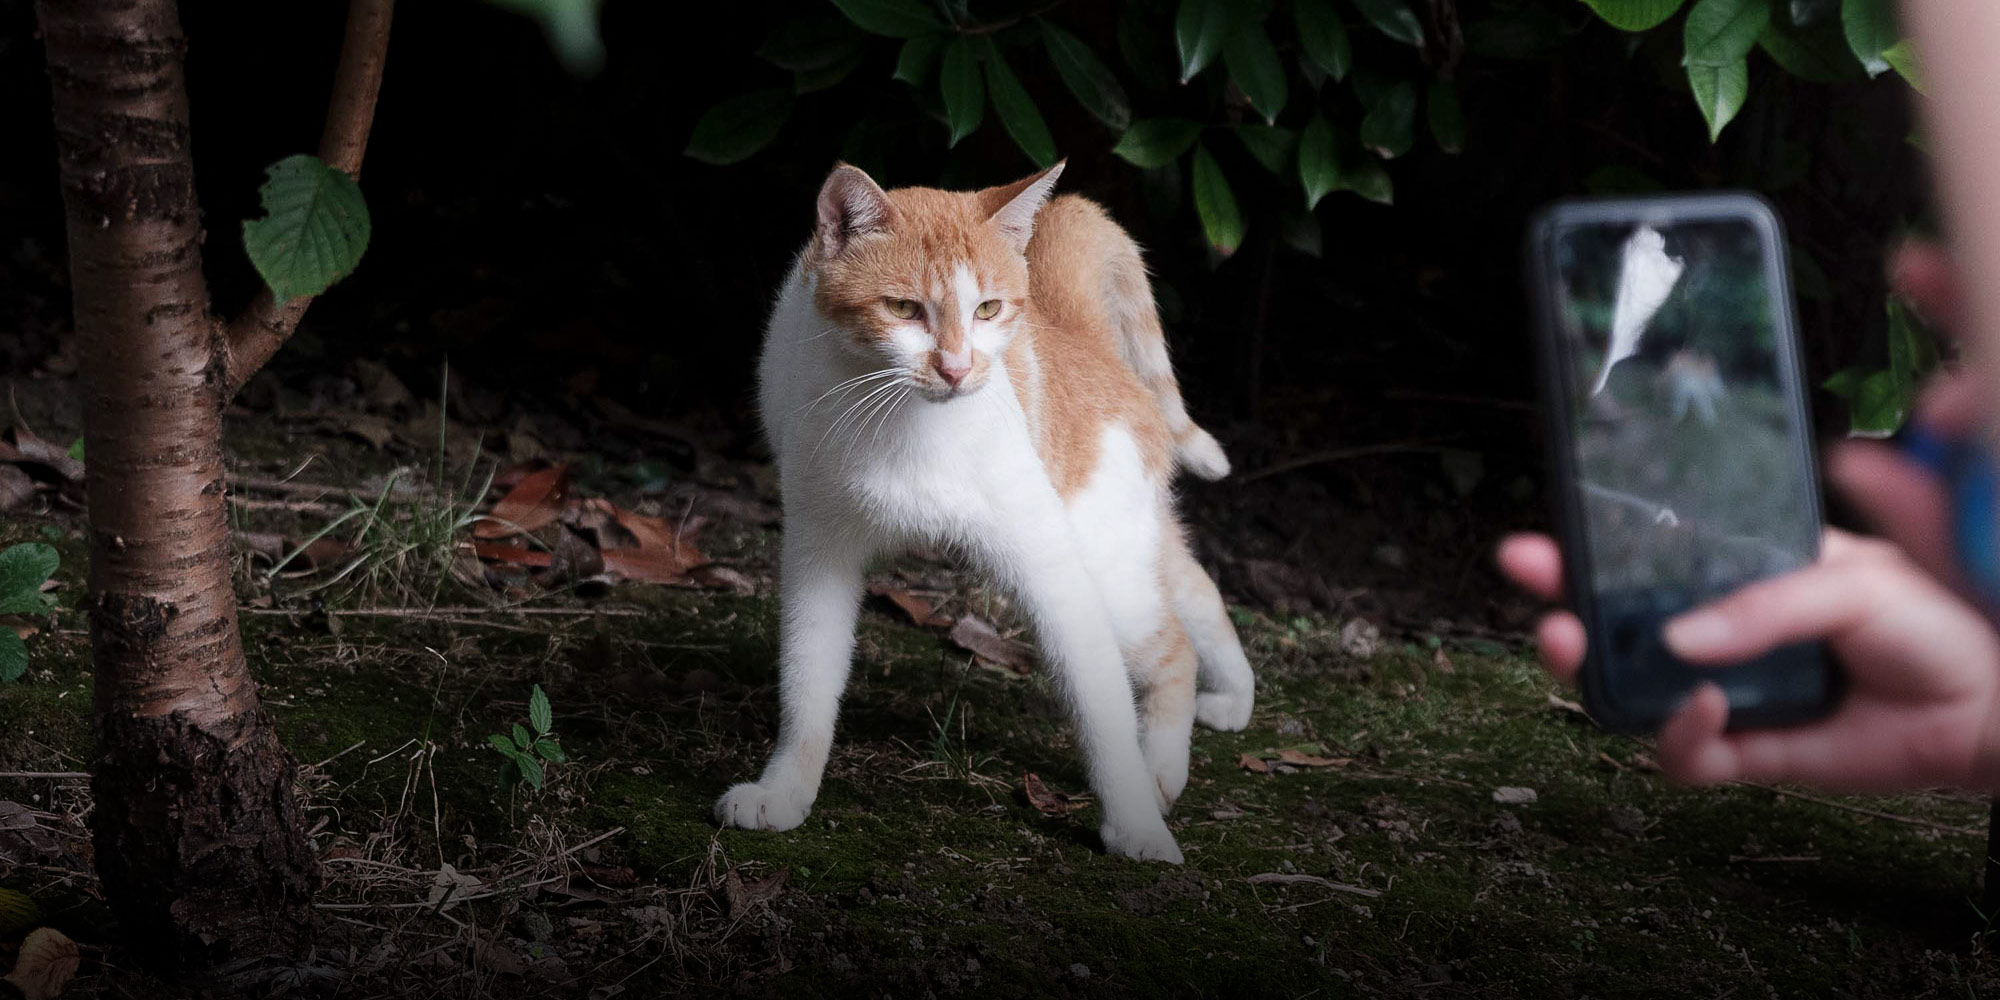 Shanghai Confronts a Furry Pest Problem: Millions of Stray Cats